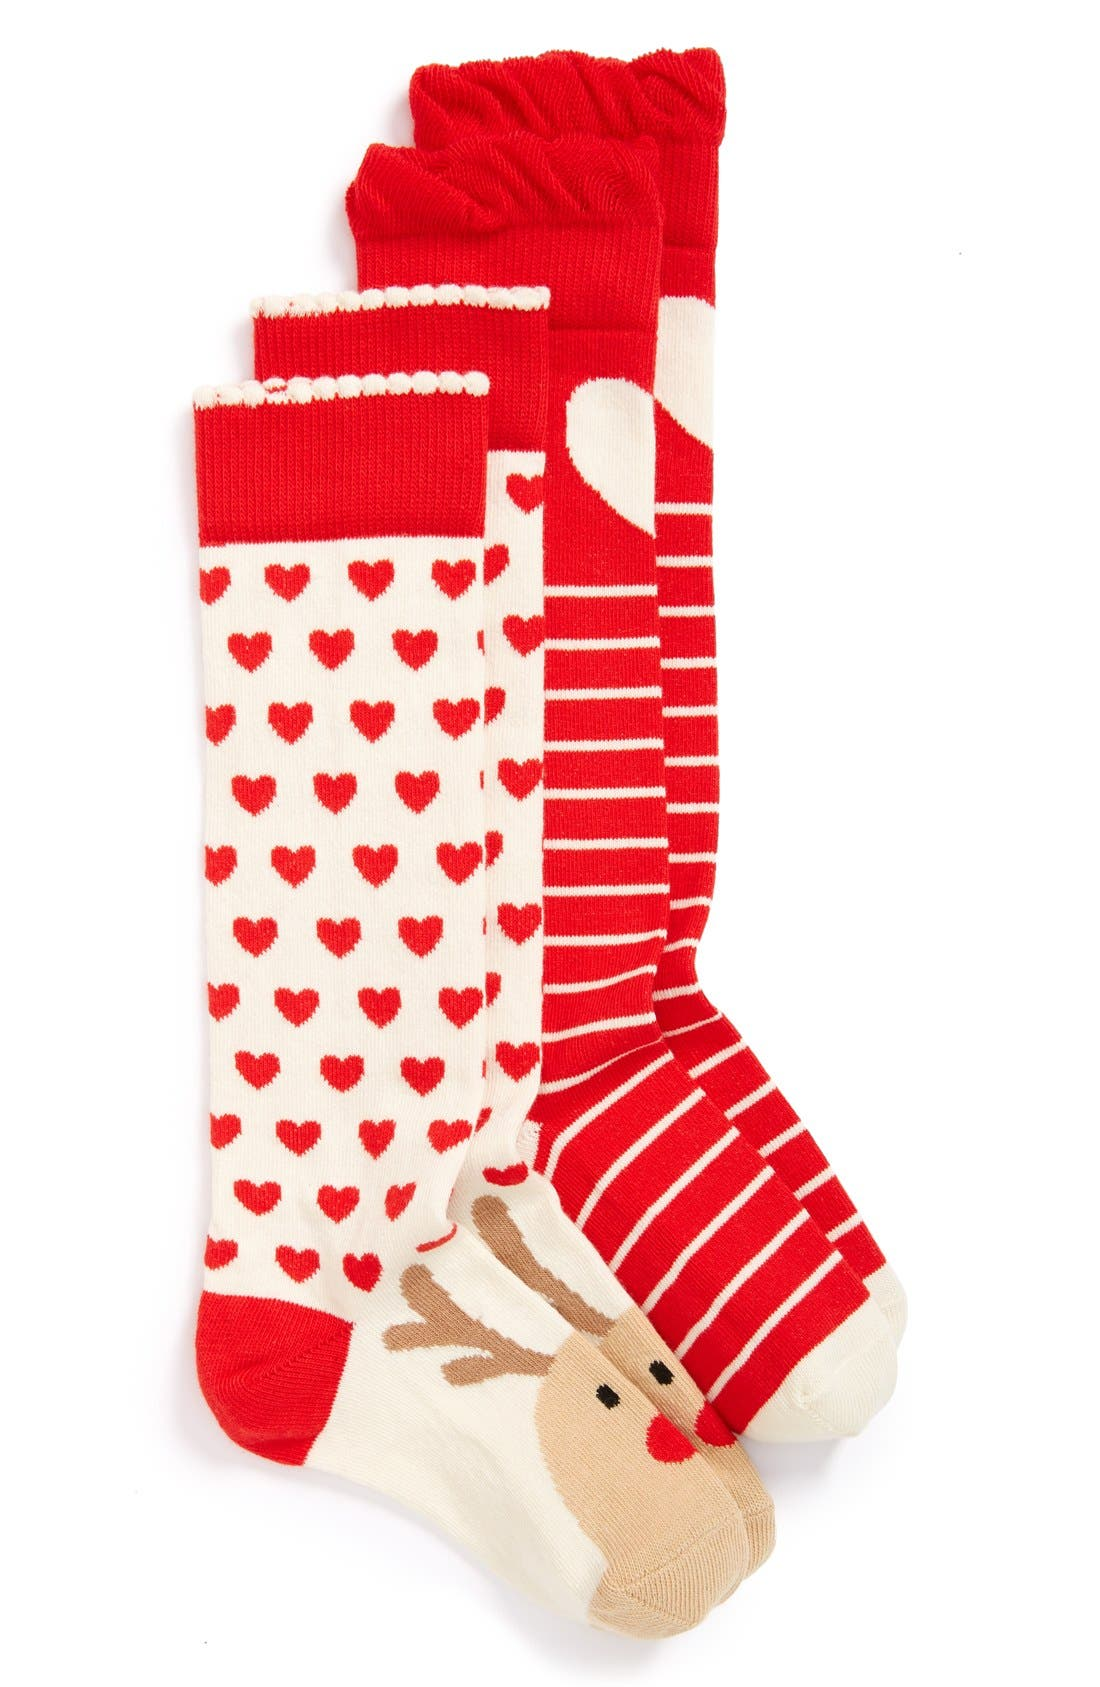 'Rudolph the Red Nosed Reindeer & Hearts' Knee High Socks,                             Main thumbnail 1, color,                             100